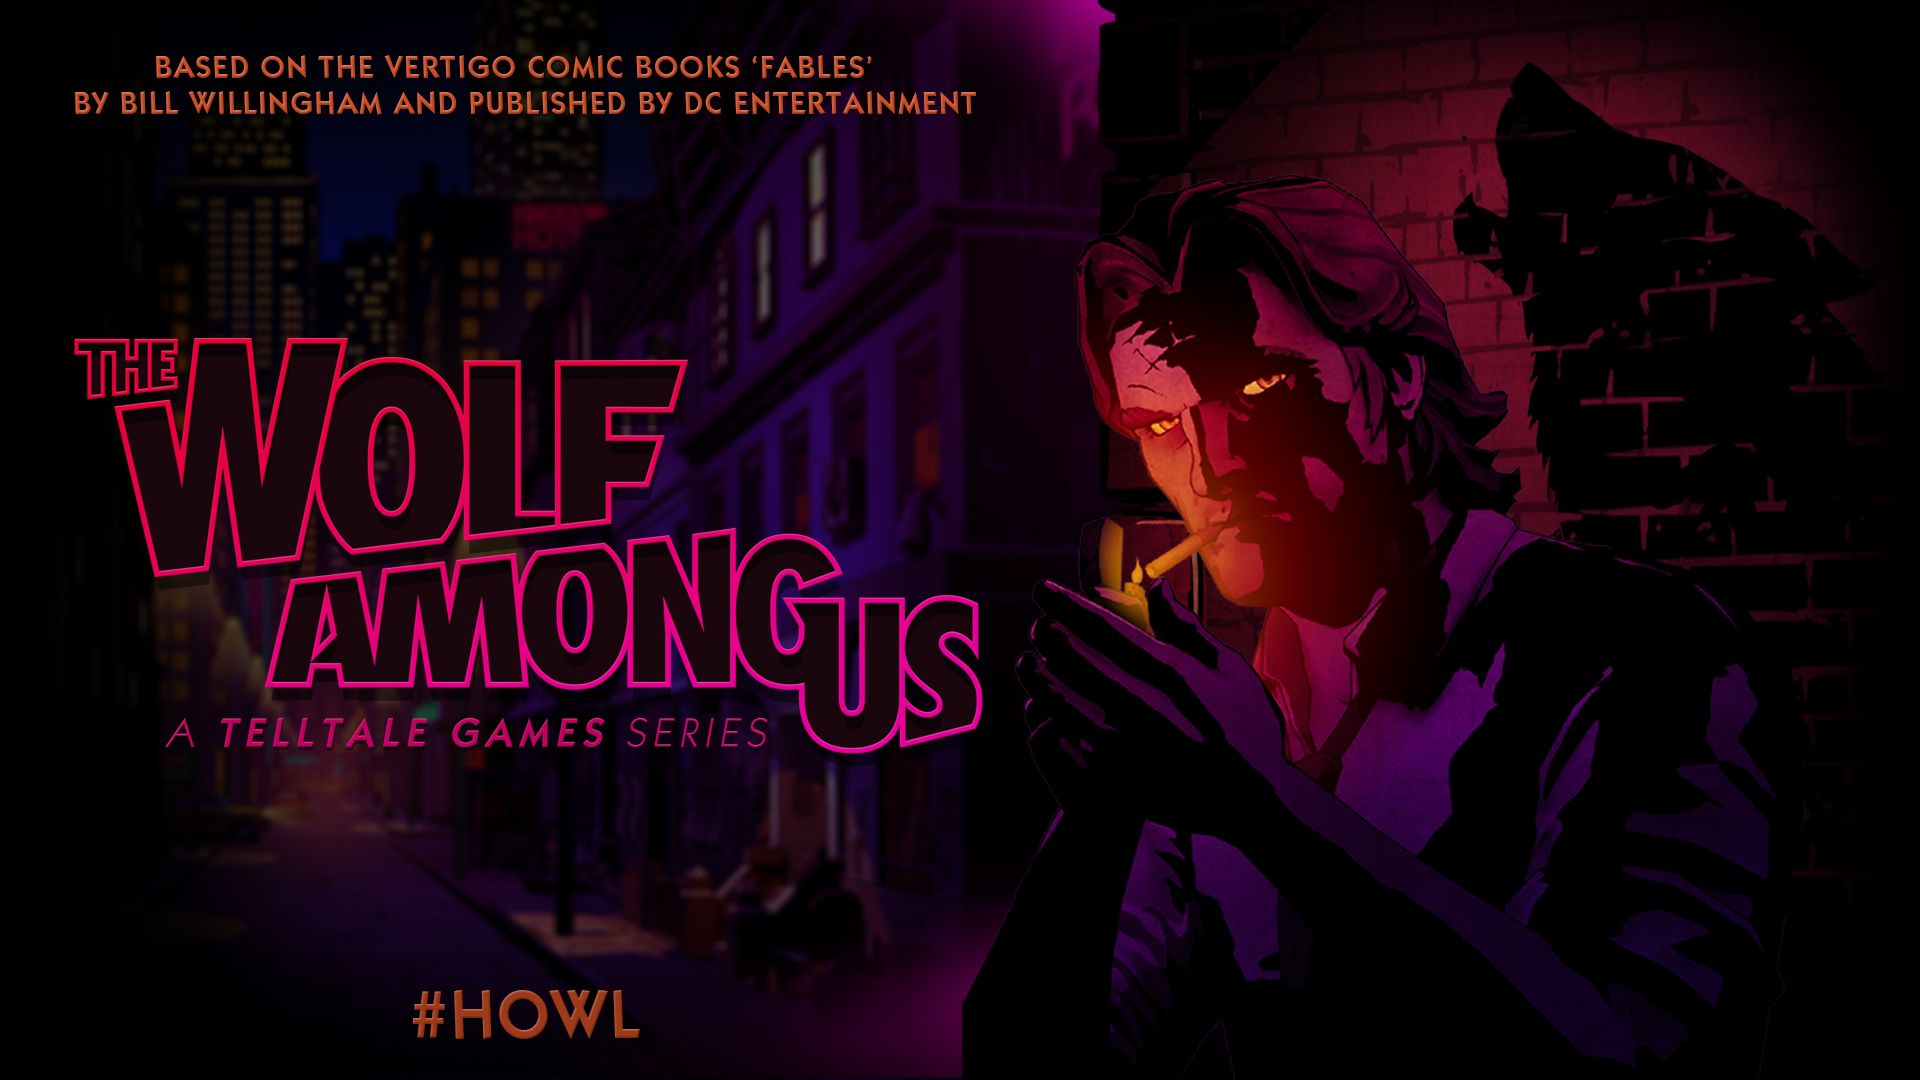 The Wolf Among Us Telltalegames The Wolf Among Us Fables Comic Fables